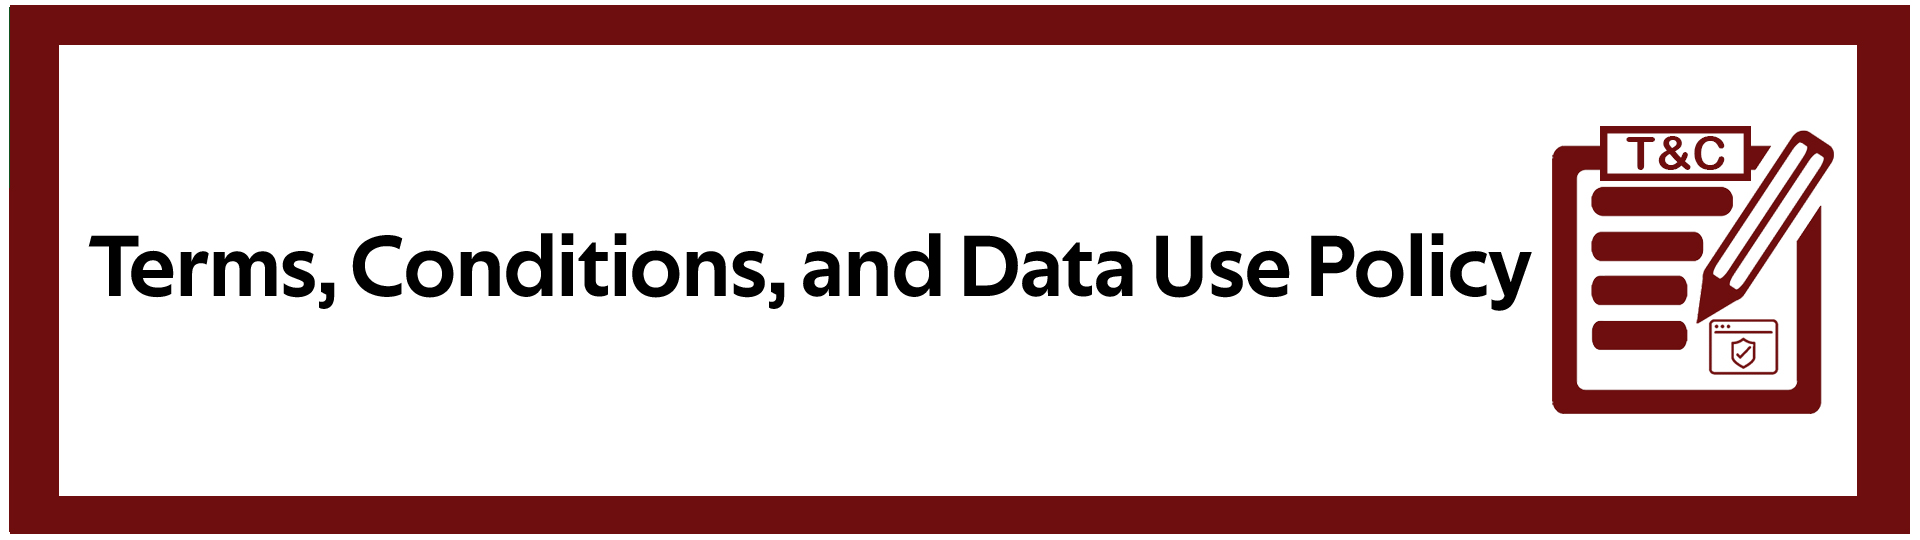 Terms, Conditions, and Data Use Policy